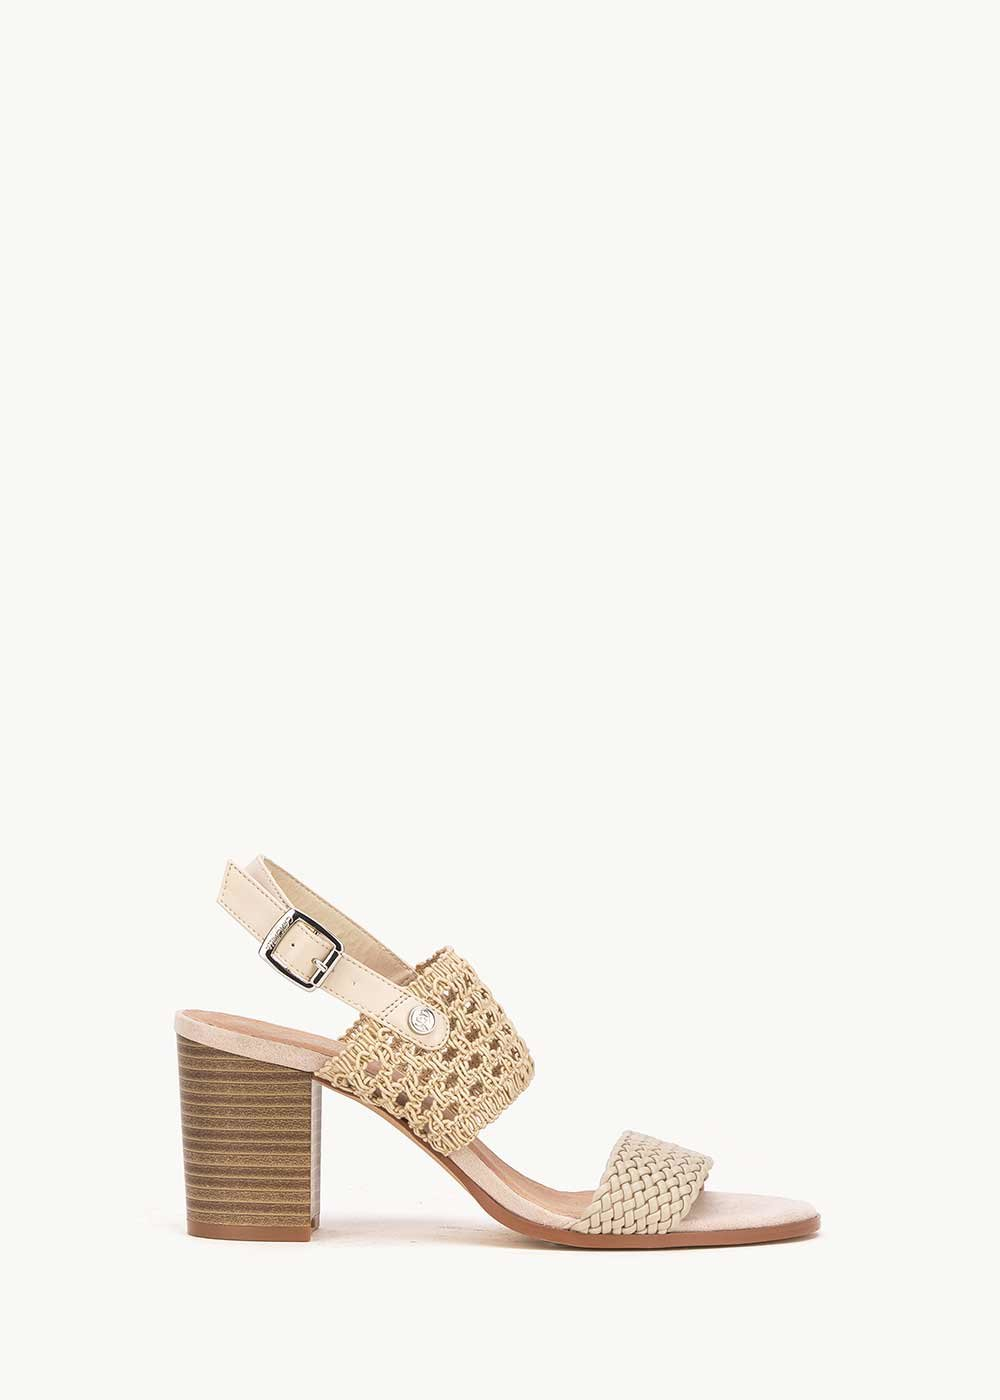 Sher sandal with crochet band - Light Beige / Safari	 - Woman